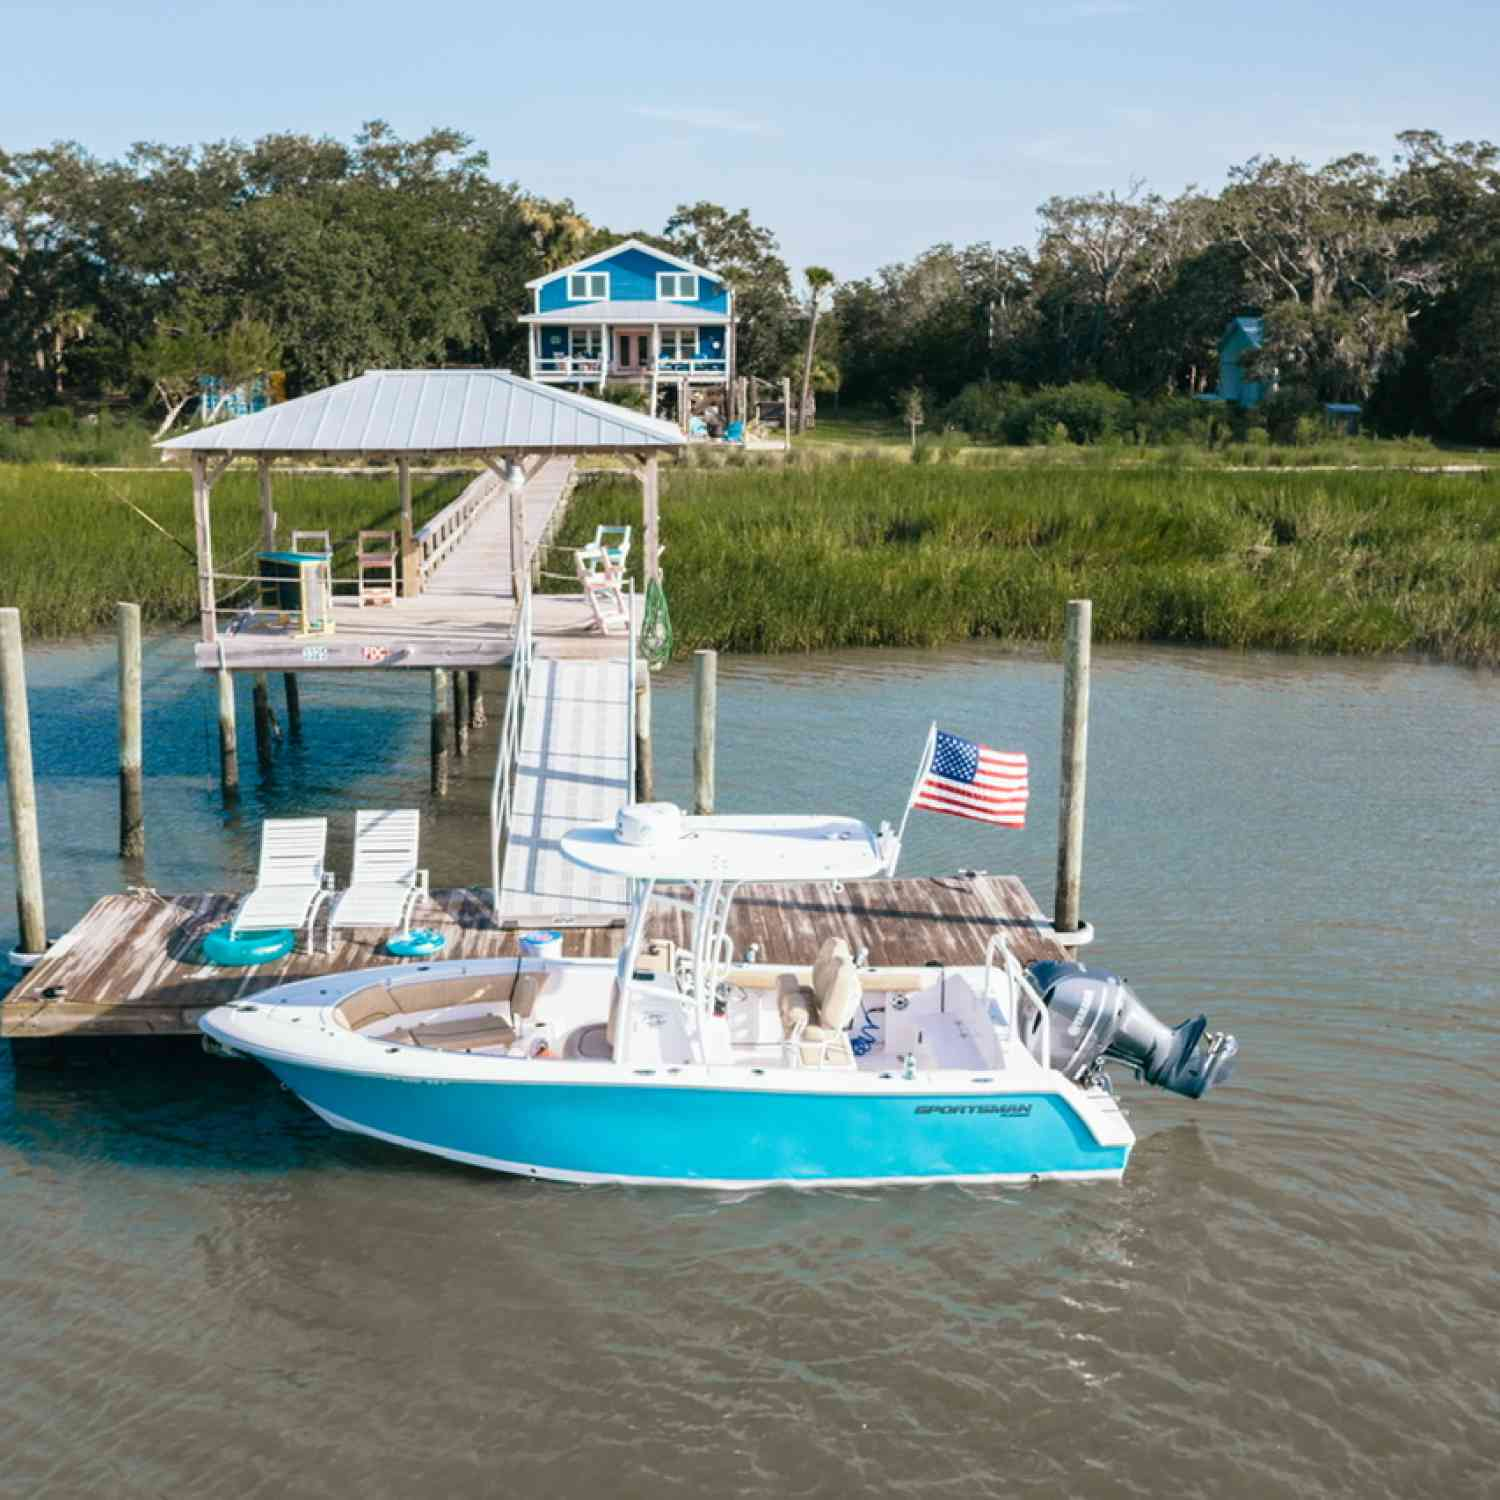 Title: Life on the GOAT - On board their Sportsman Heritage 231 Center Console - Location: Goat Island, SC. Participating in the Photo Contest #SportsmanAugust2020